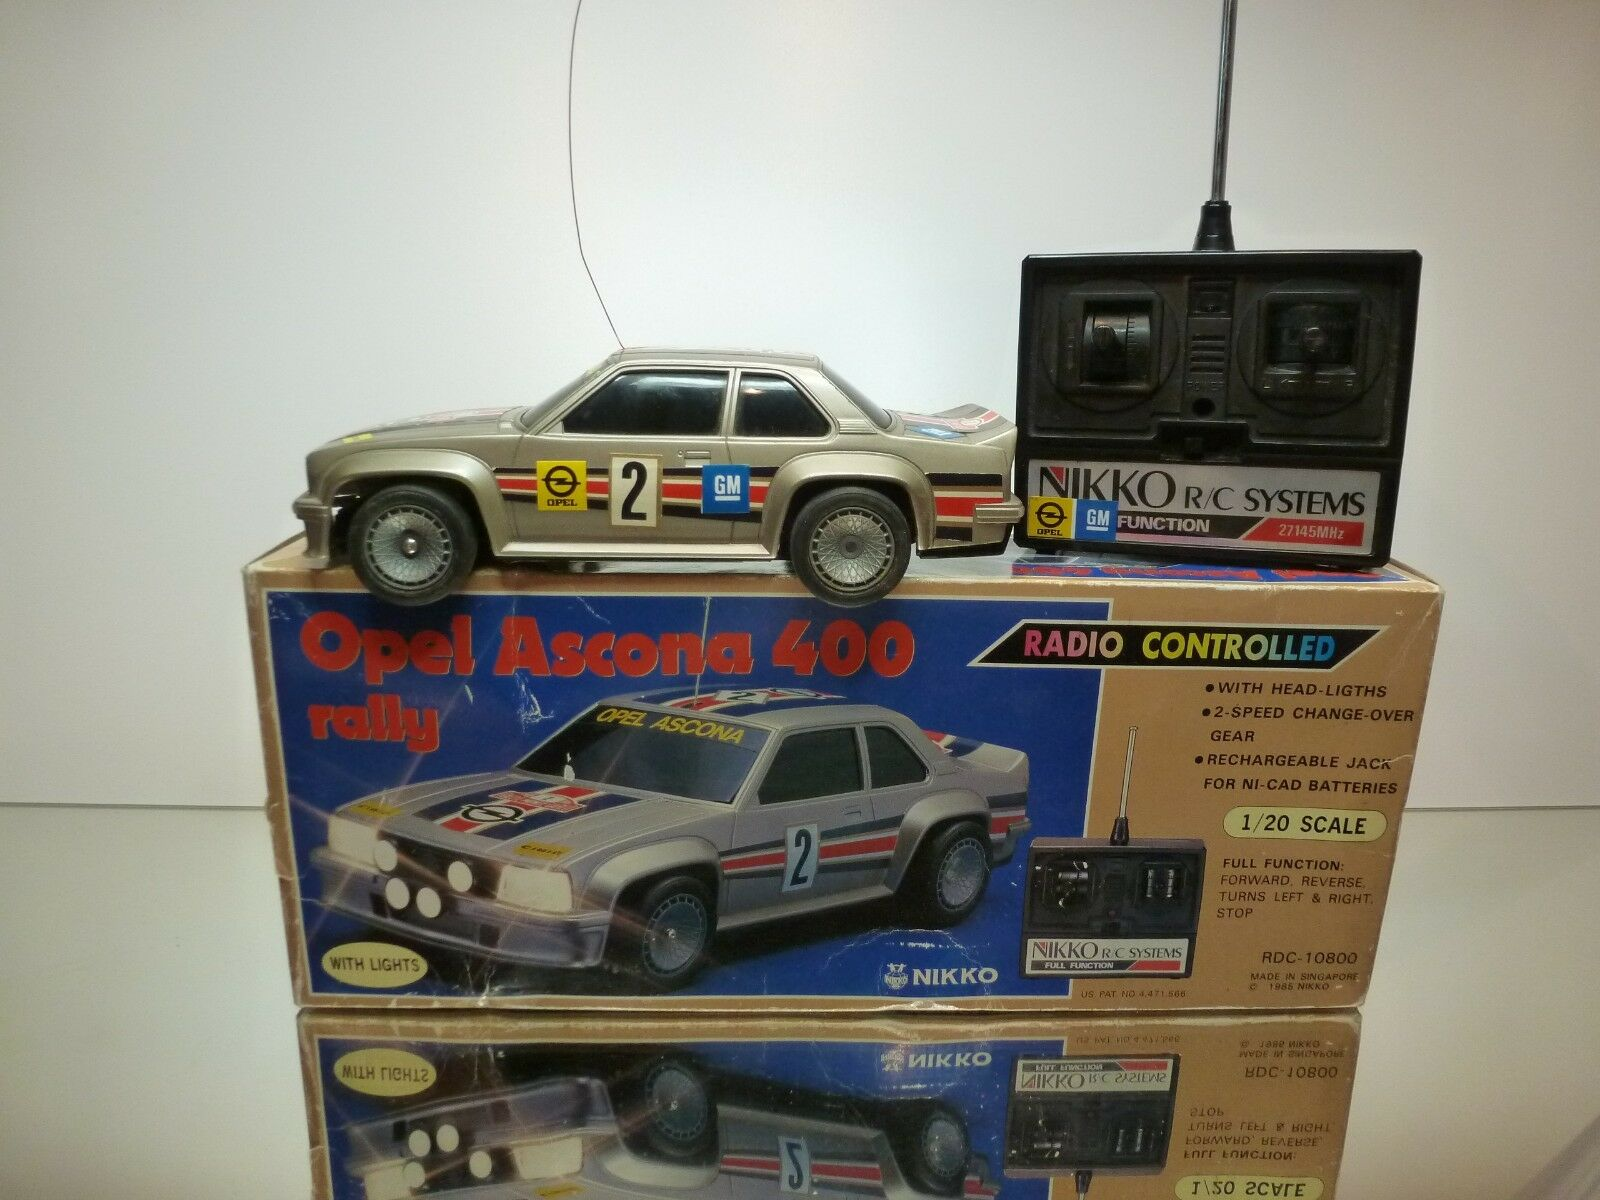 NIKKO RADIO RADIO RADIO CONTROLLED OPEL ASCONA 400 RALLY GREY 1 20 - GOOD IN BOX c0fd05